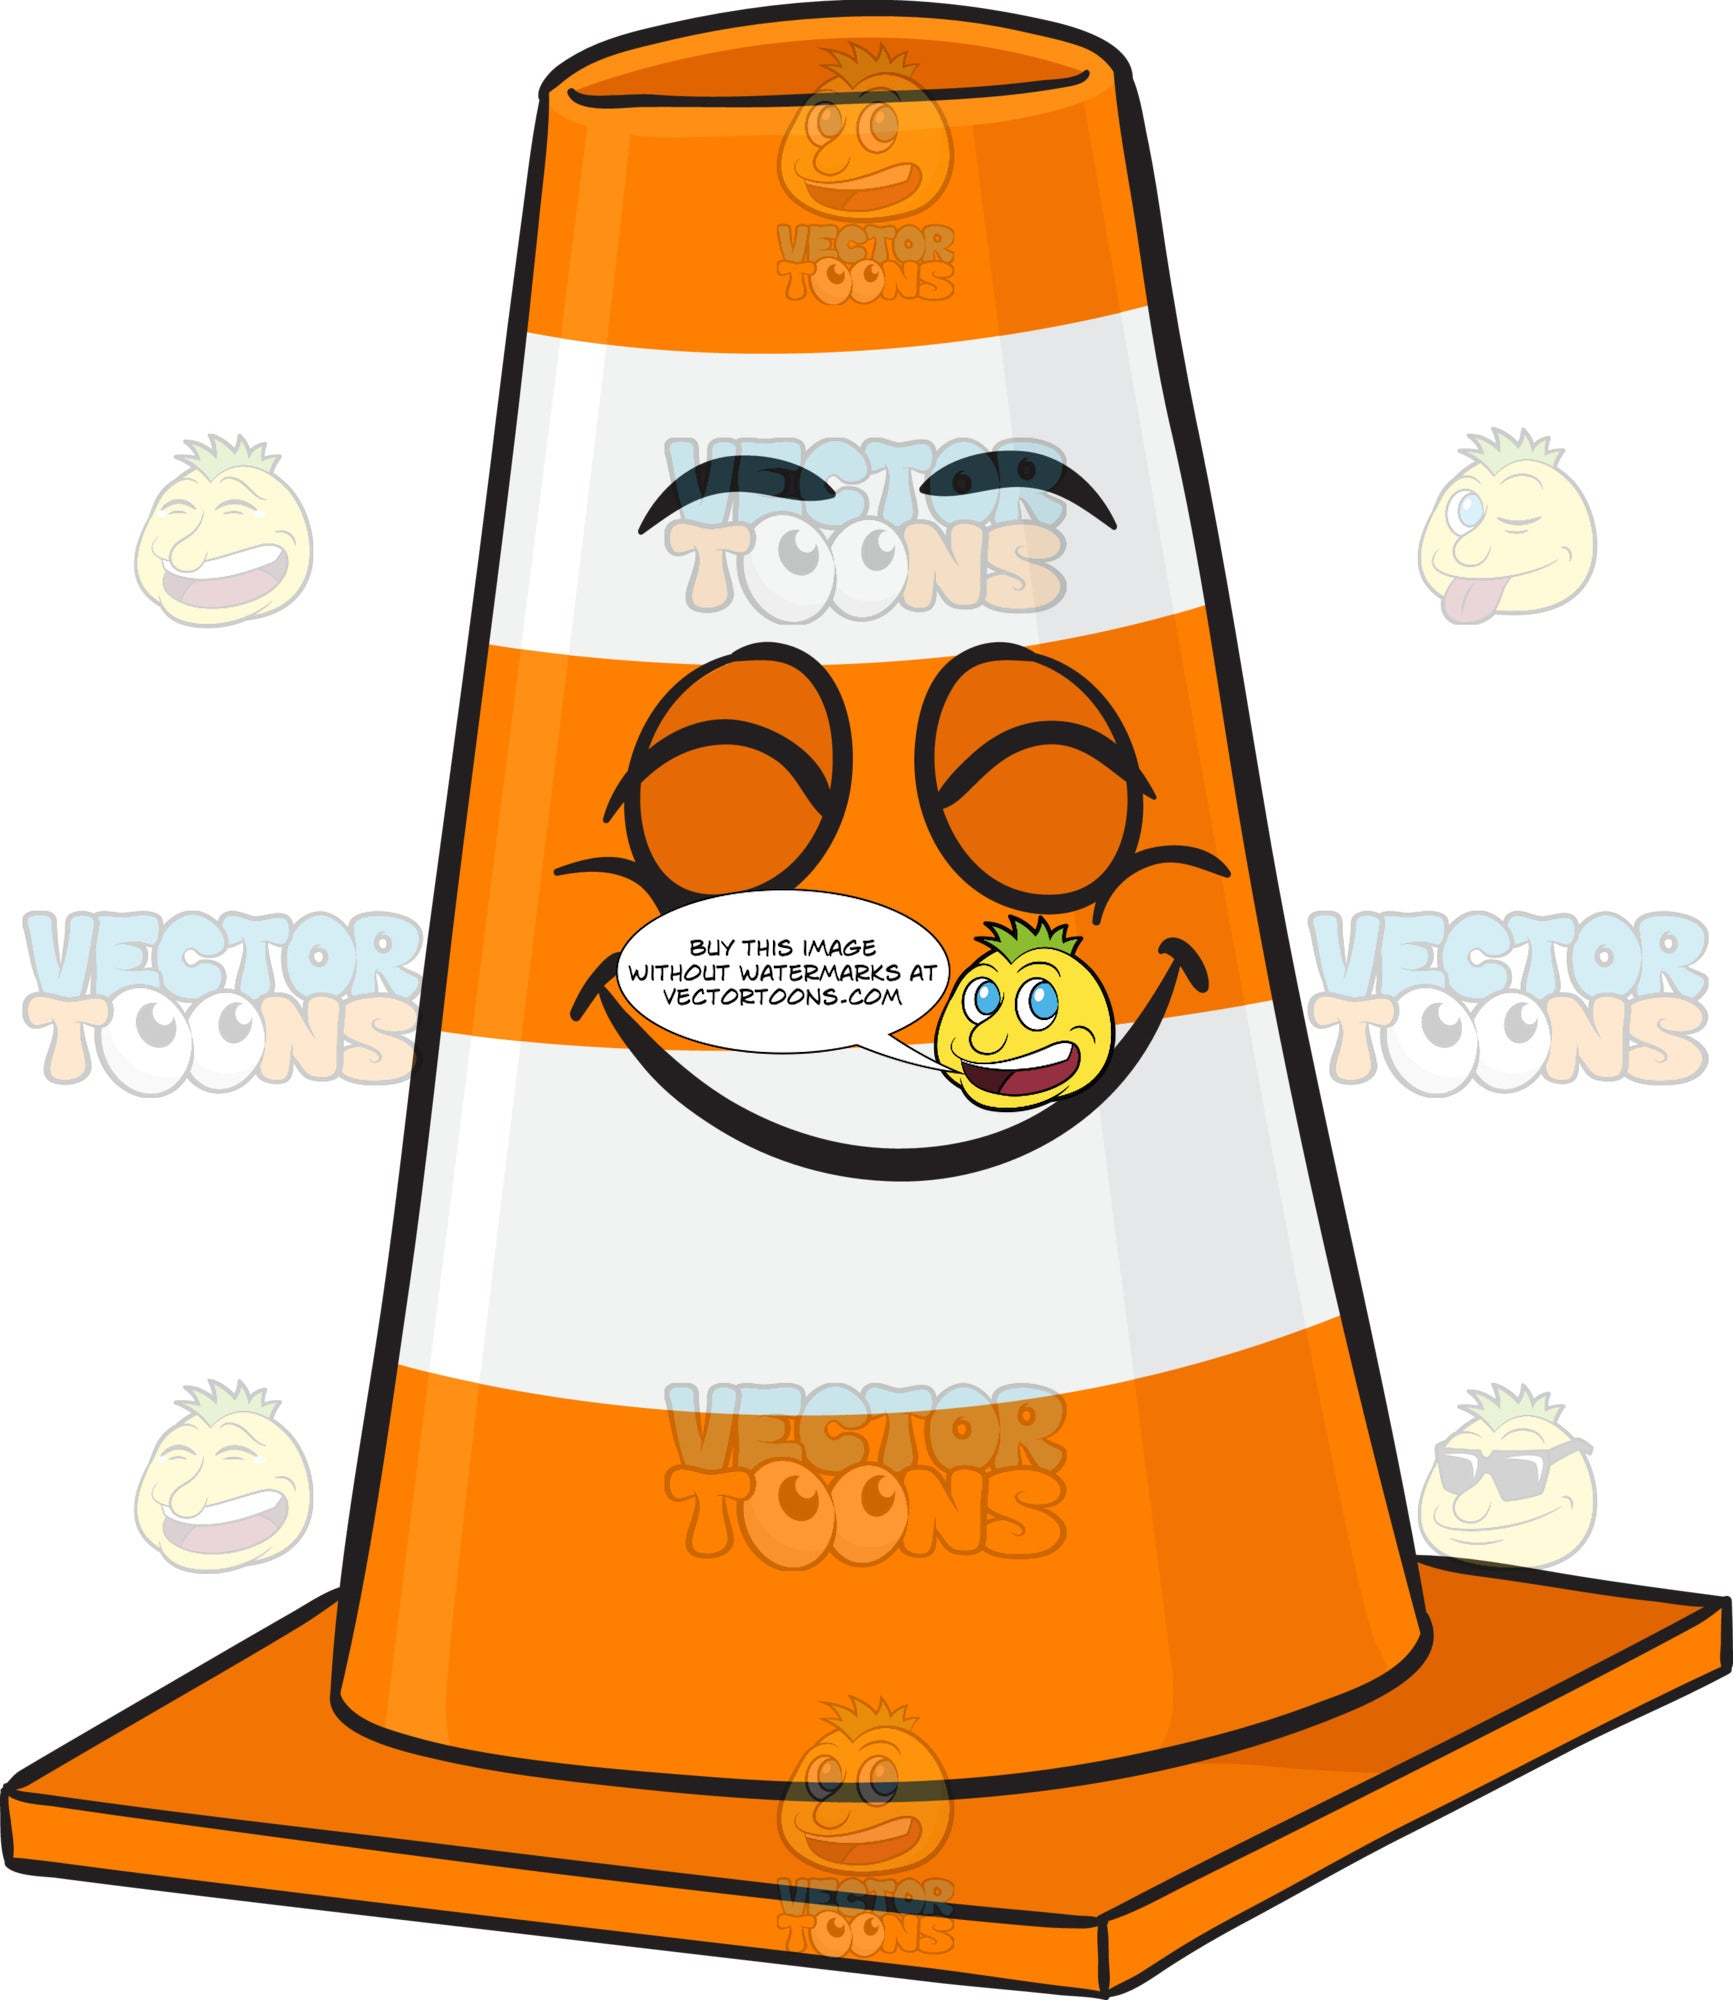 Traffic Cone Character With Beaming Look Of Satisfaction On Face Emoji